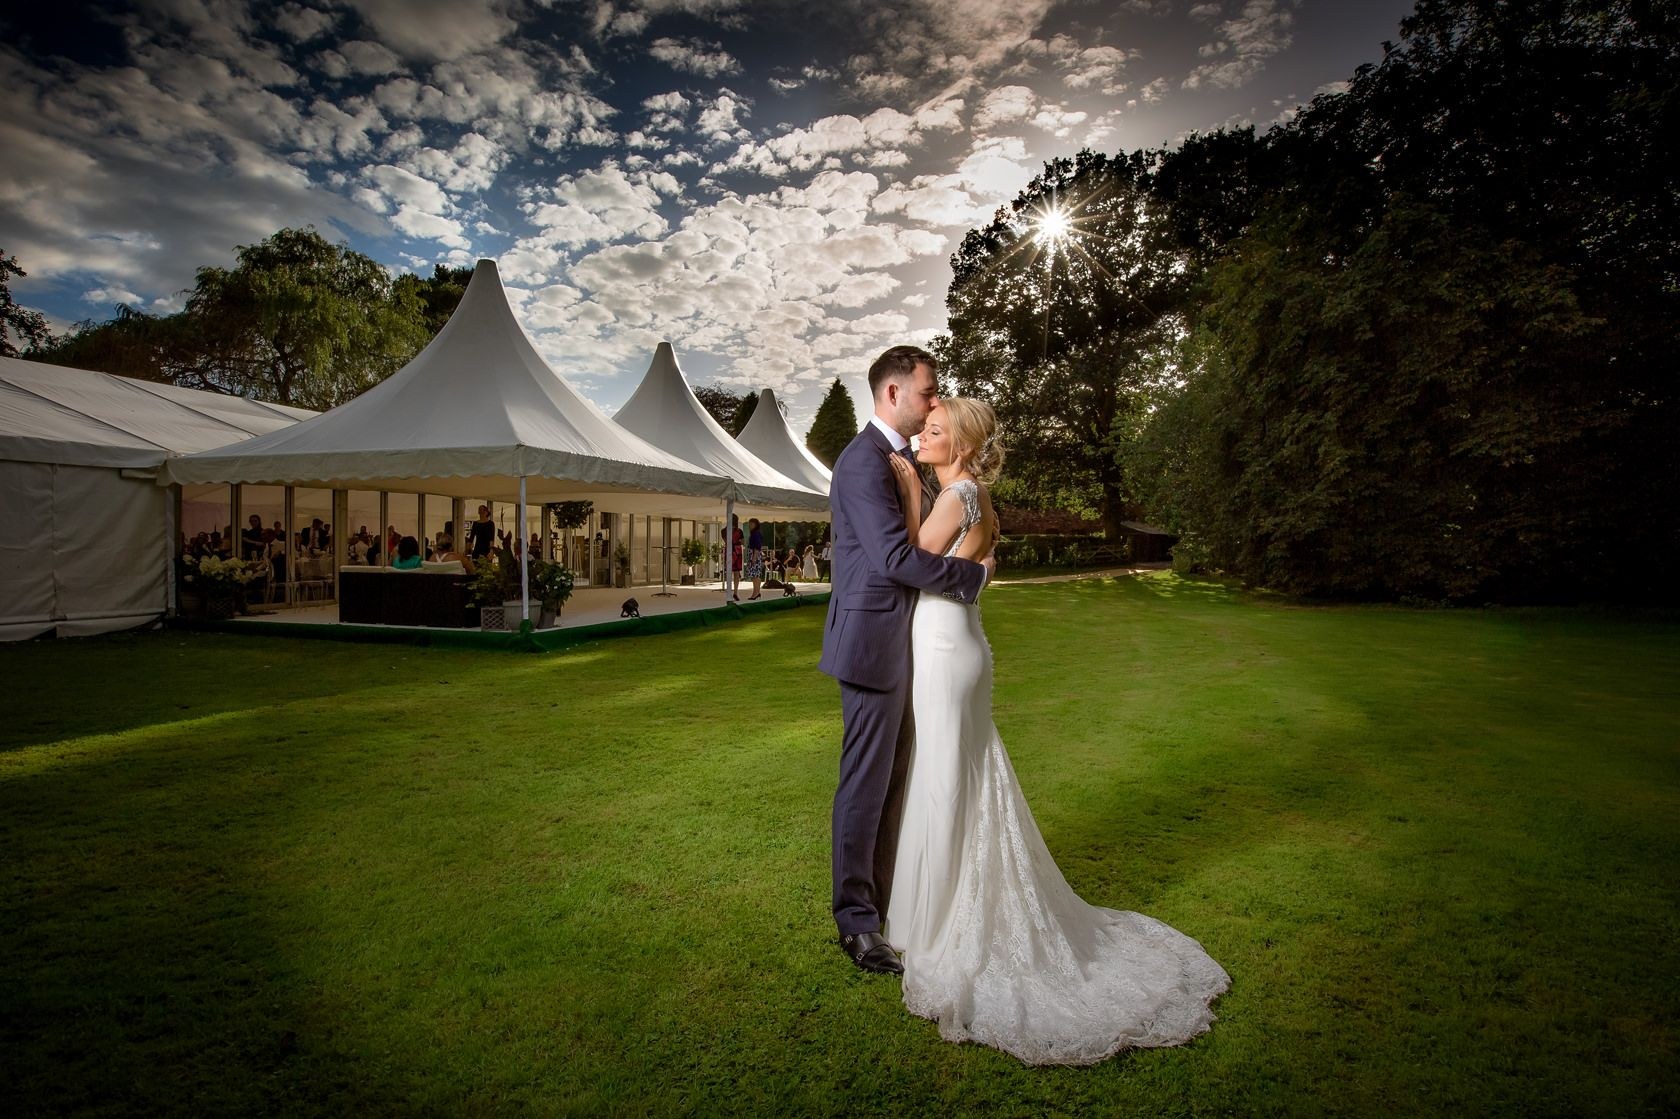 Groom holds his bride in her white wedding dress on a Summer evening outside their wedding marquee in a Cheshire garden